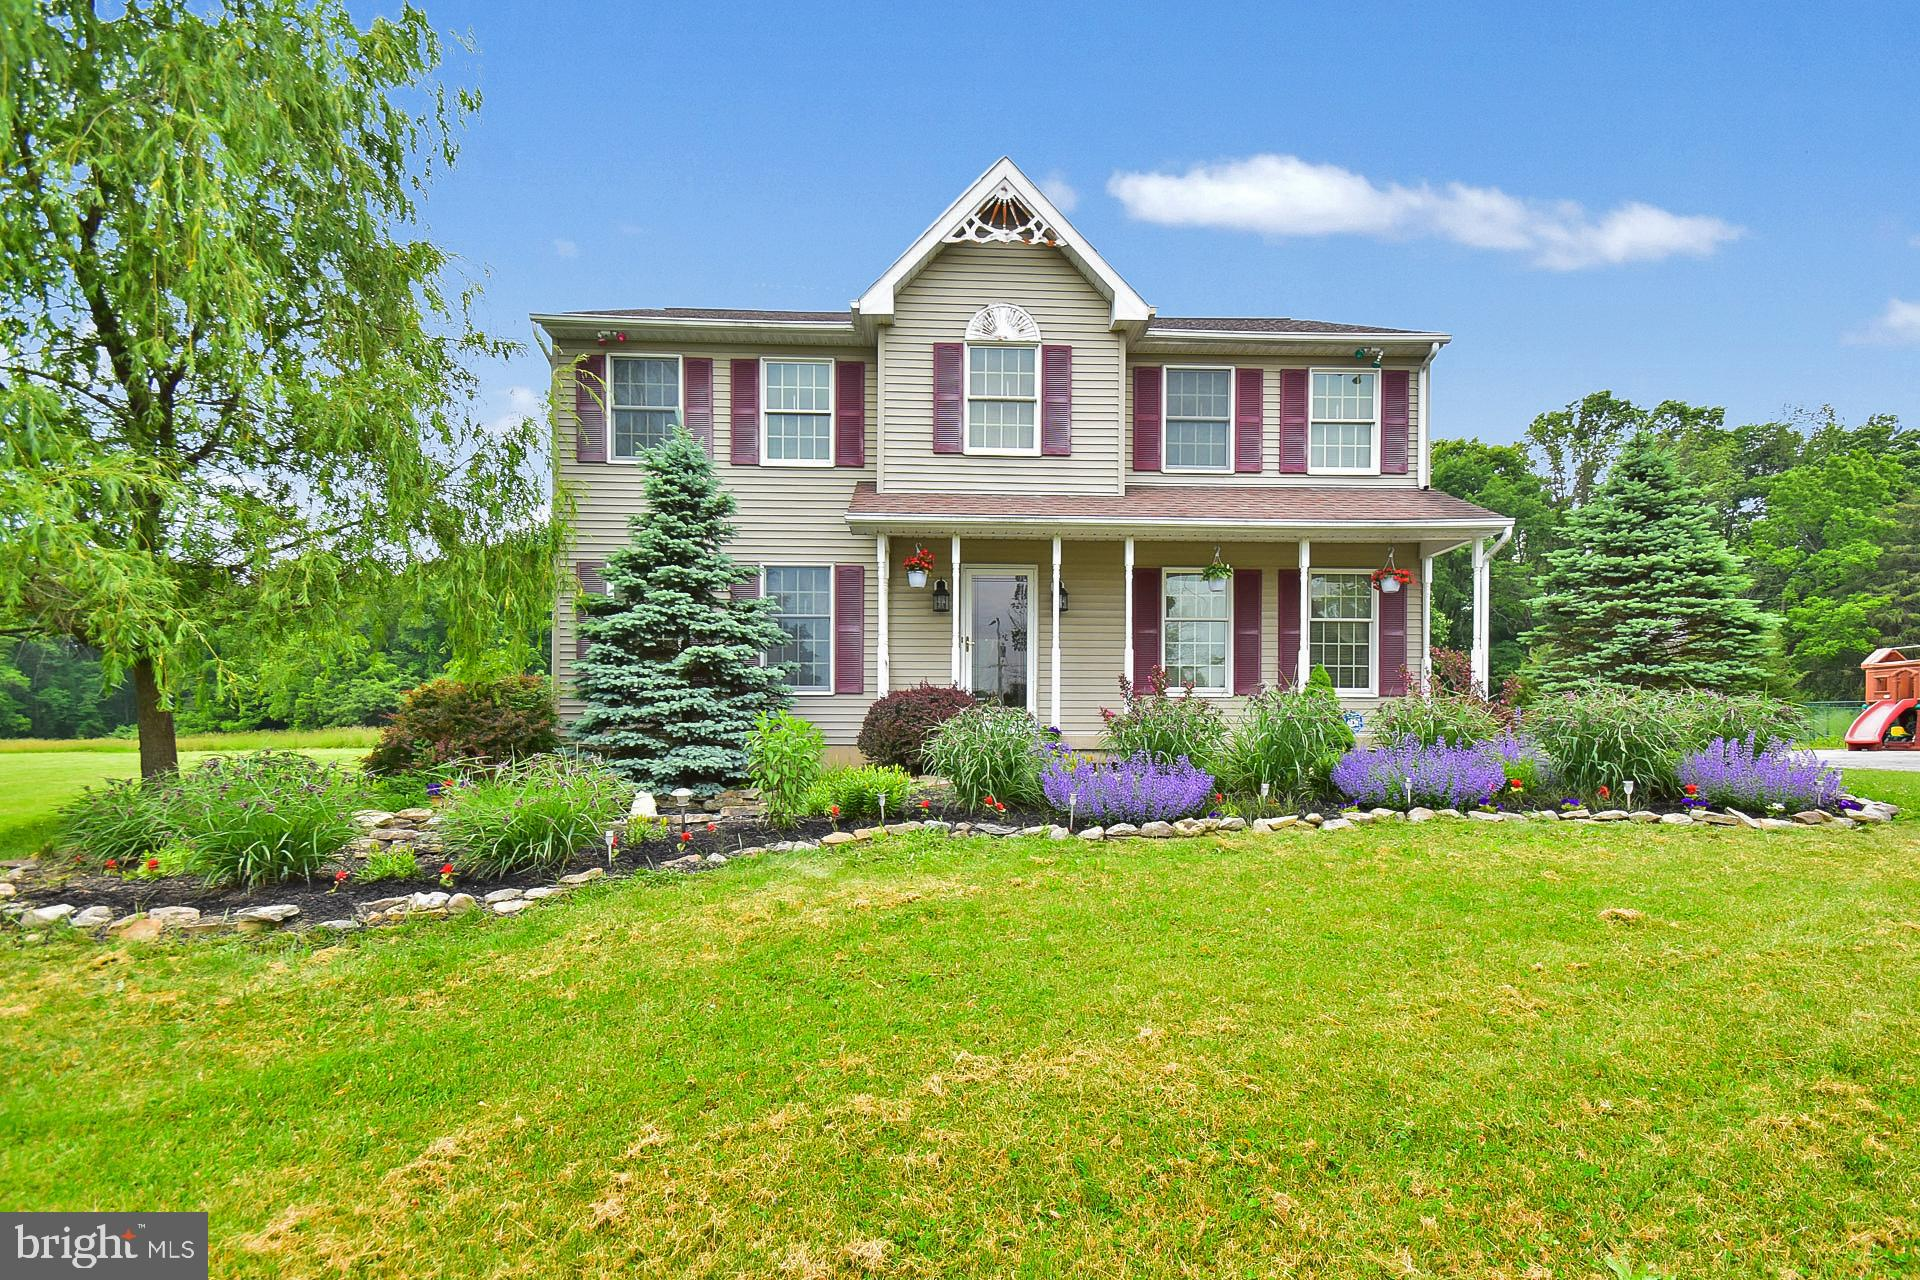 241 E MOORESTOWN ROAD, WIND GAP, PA 18091